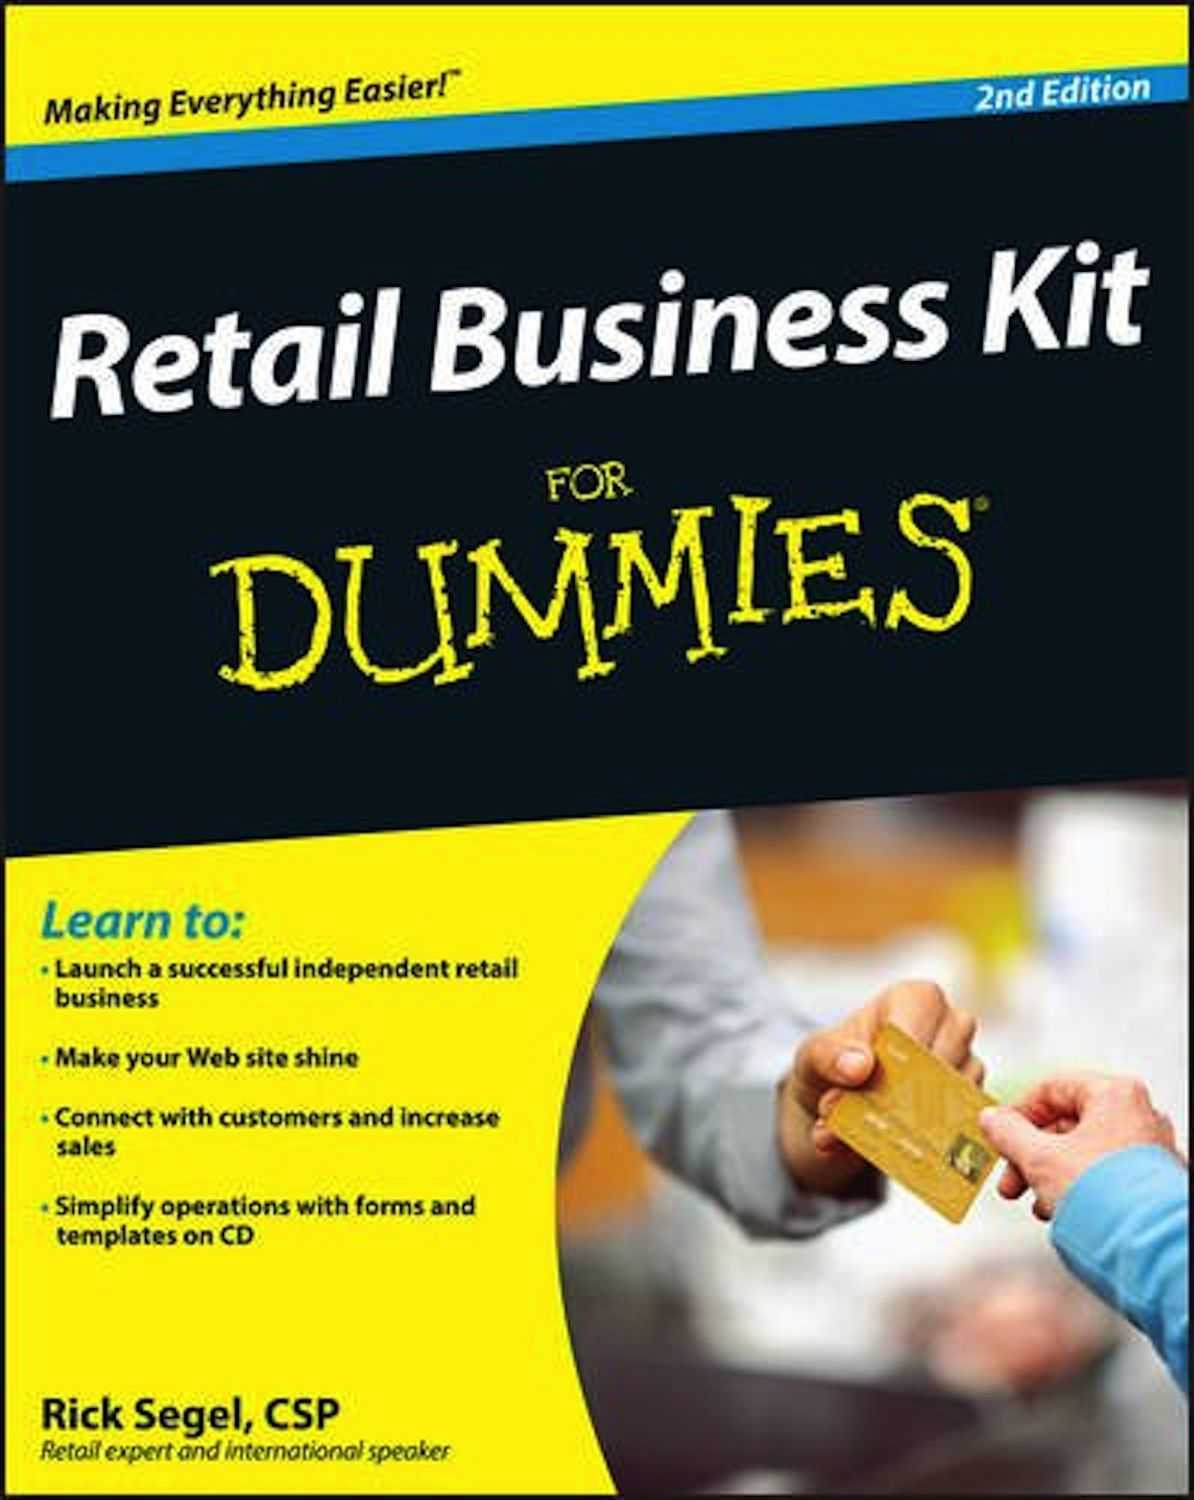 Here are the best guides to opening and operating a retail